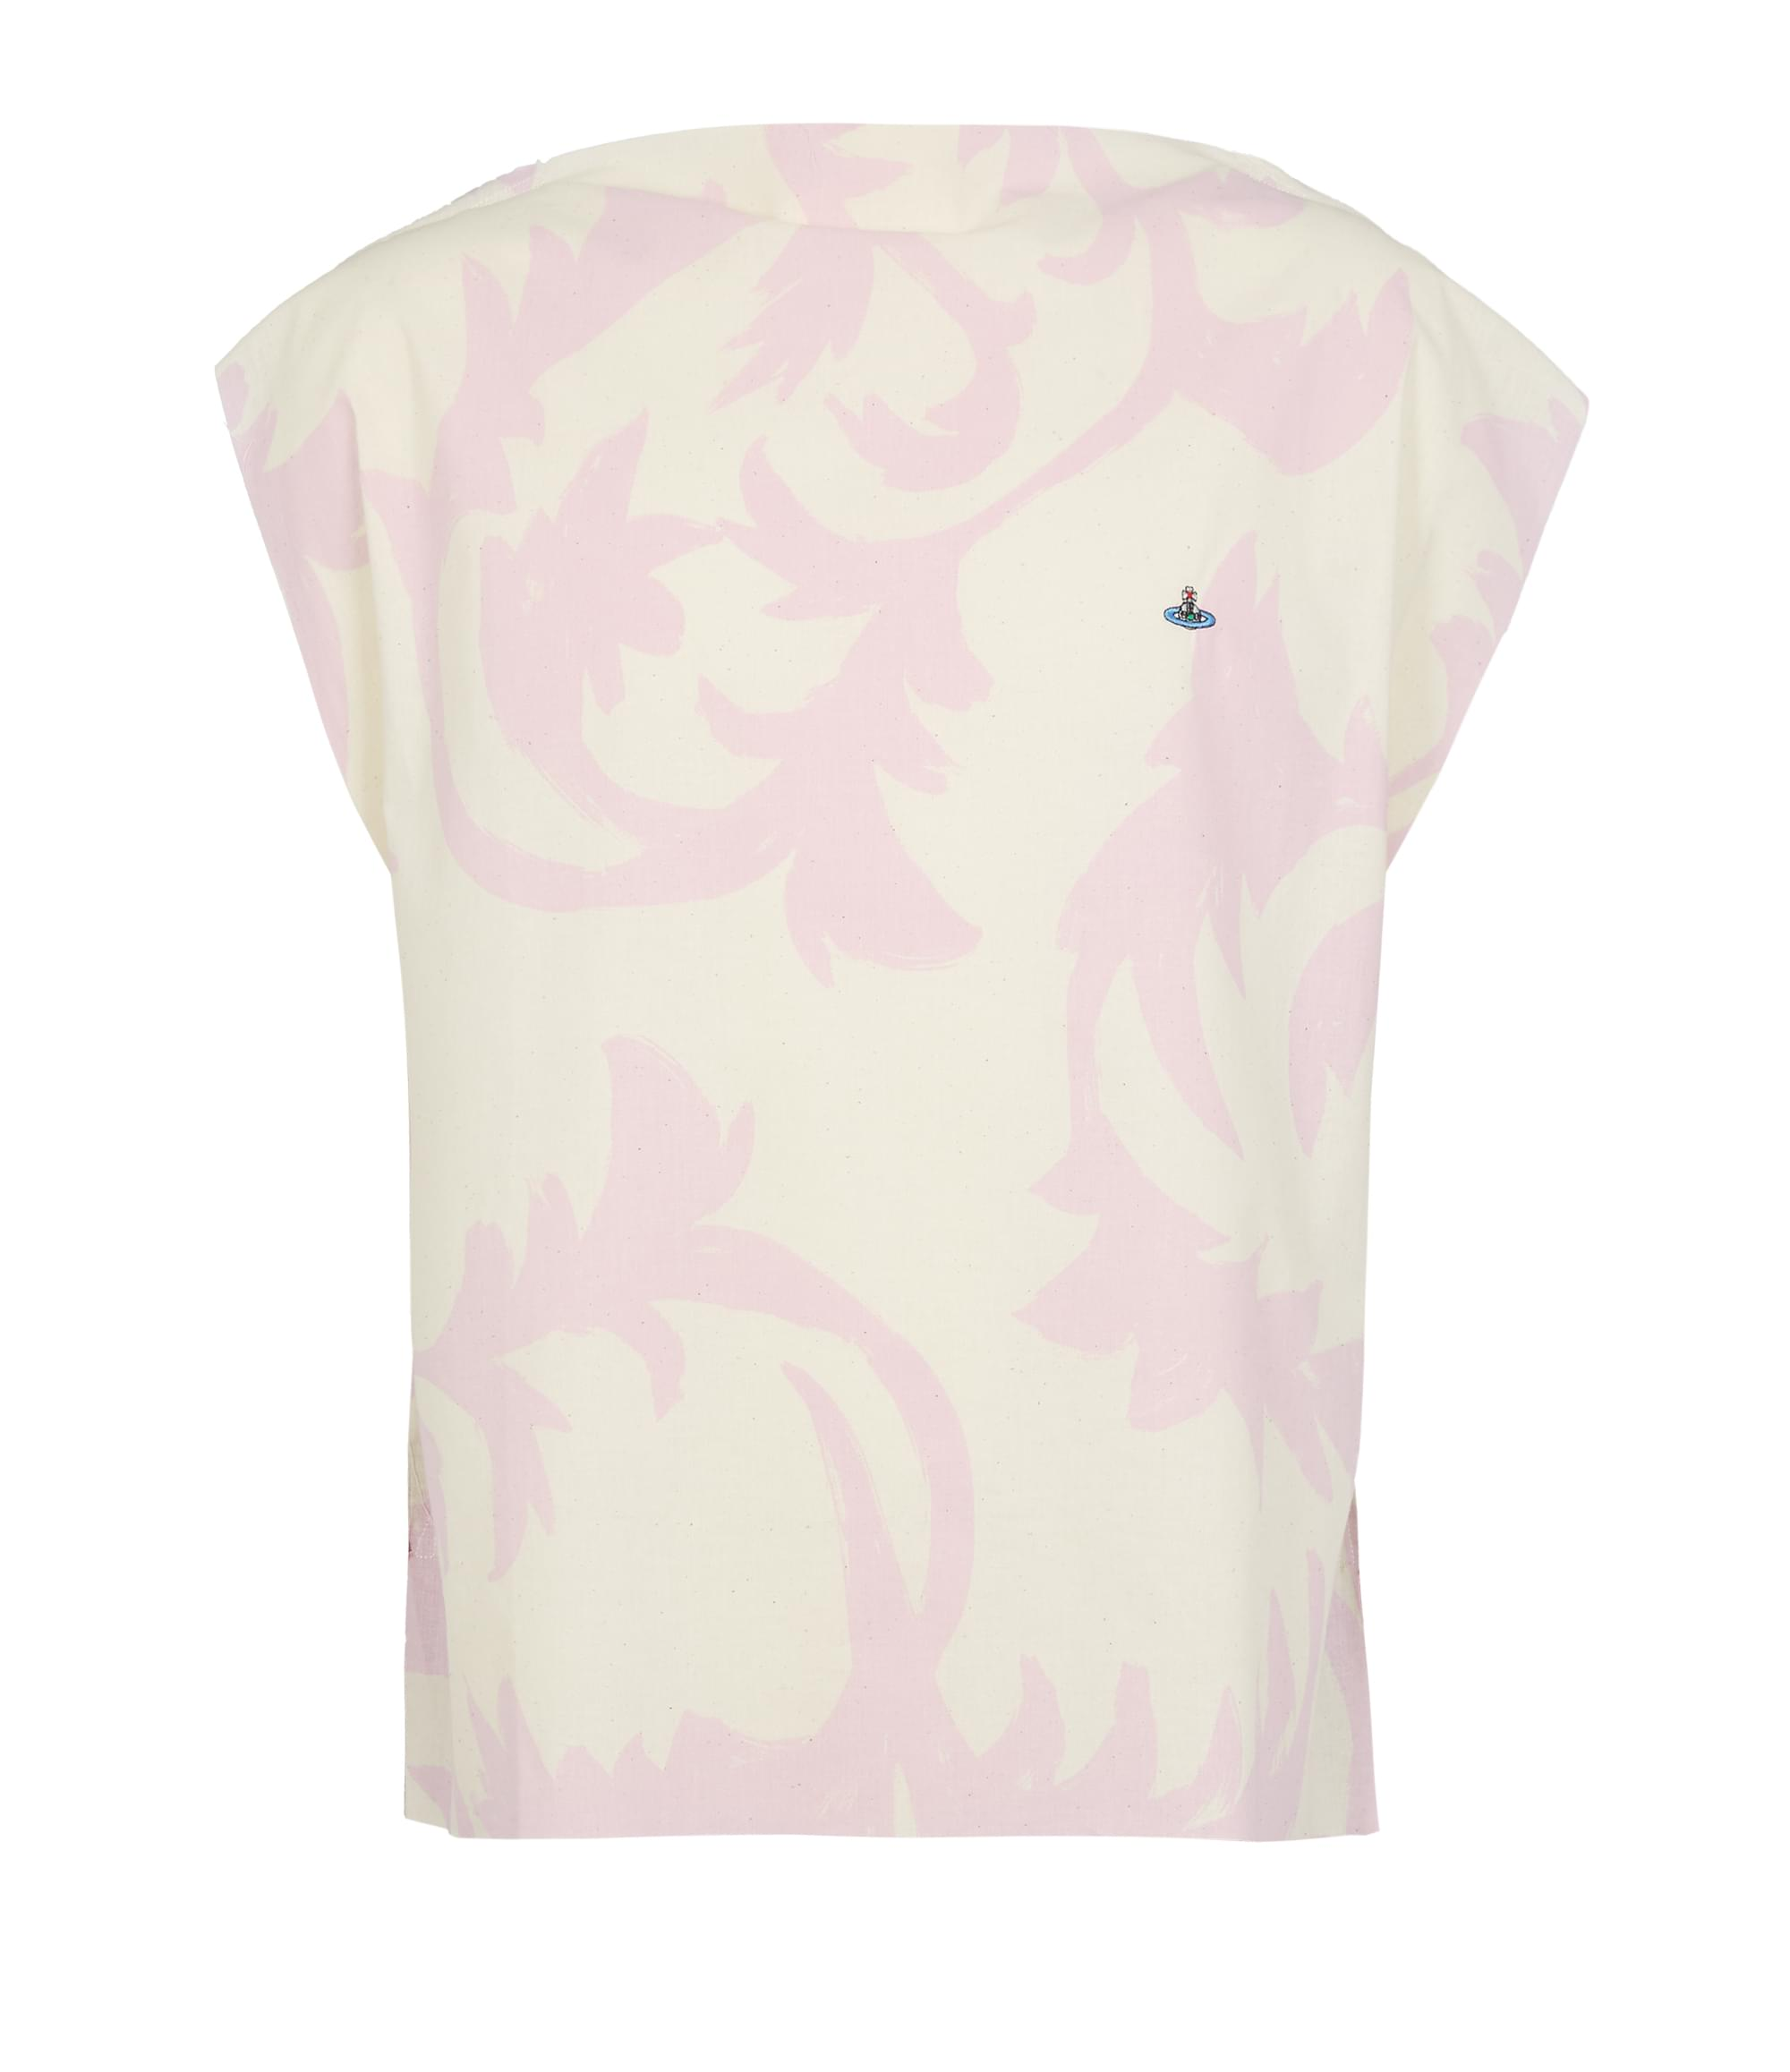 Vivienne Westwood Square T-Shirt Pink Leaves\/Tobacco Jersey